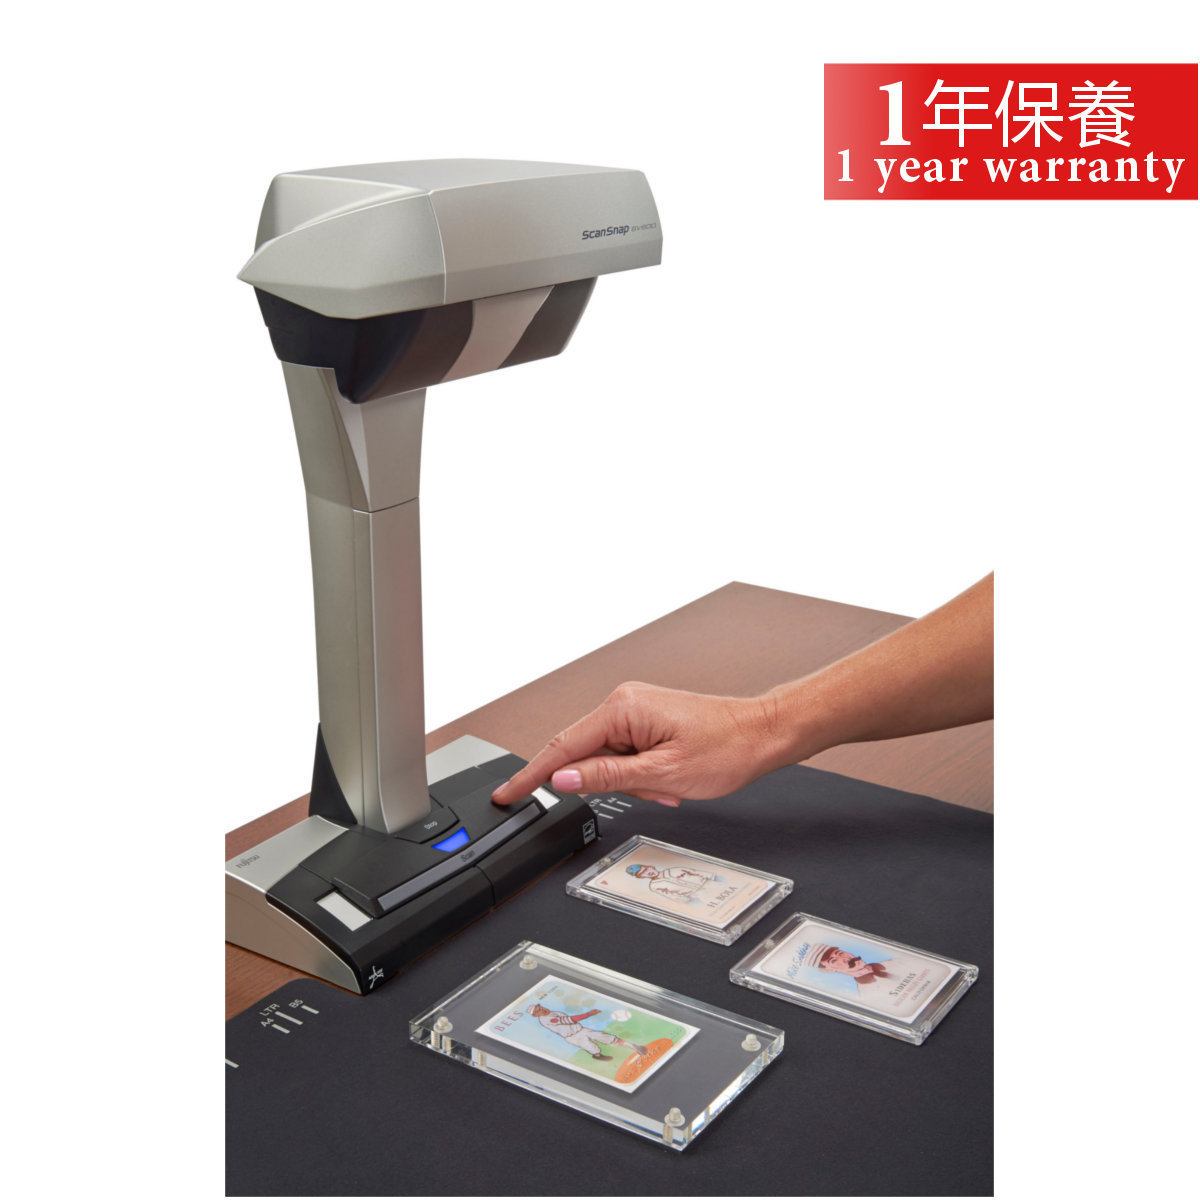 ScanSnap SV600 Scanner